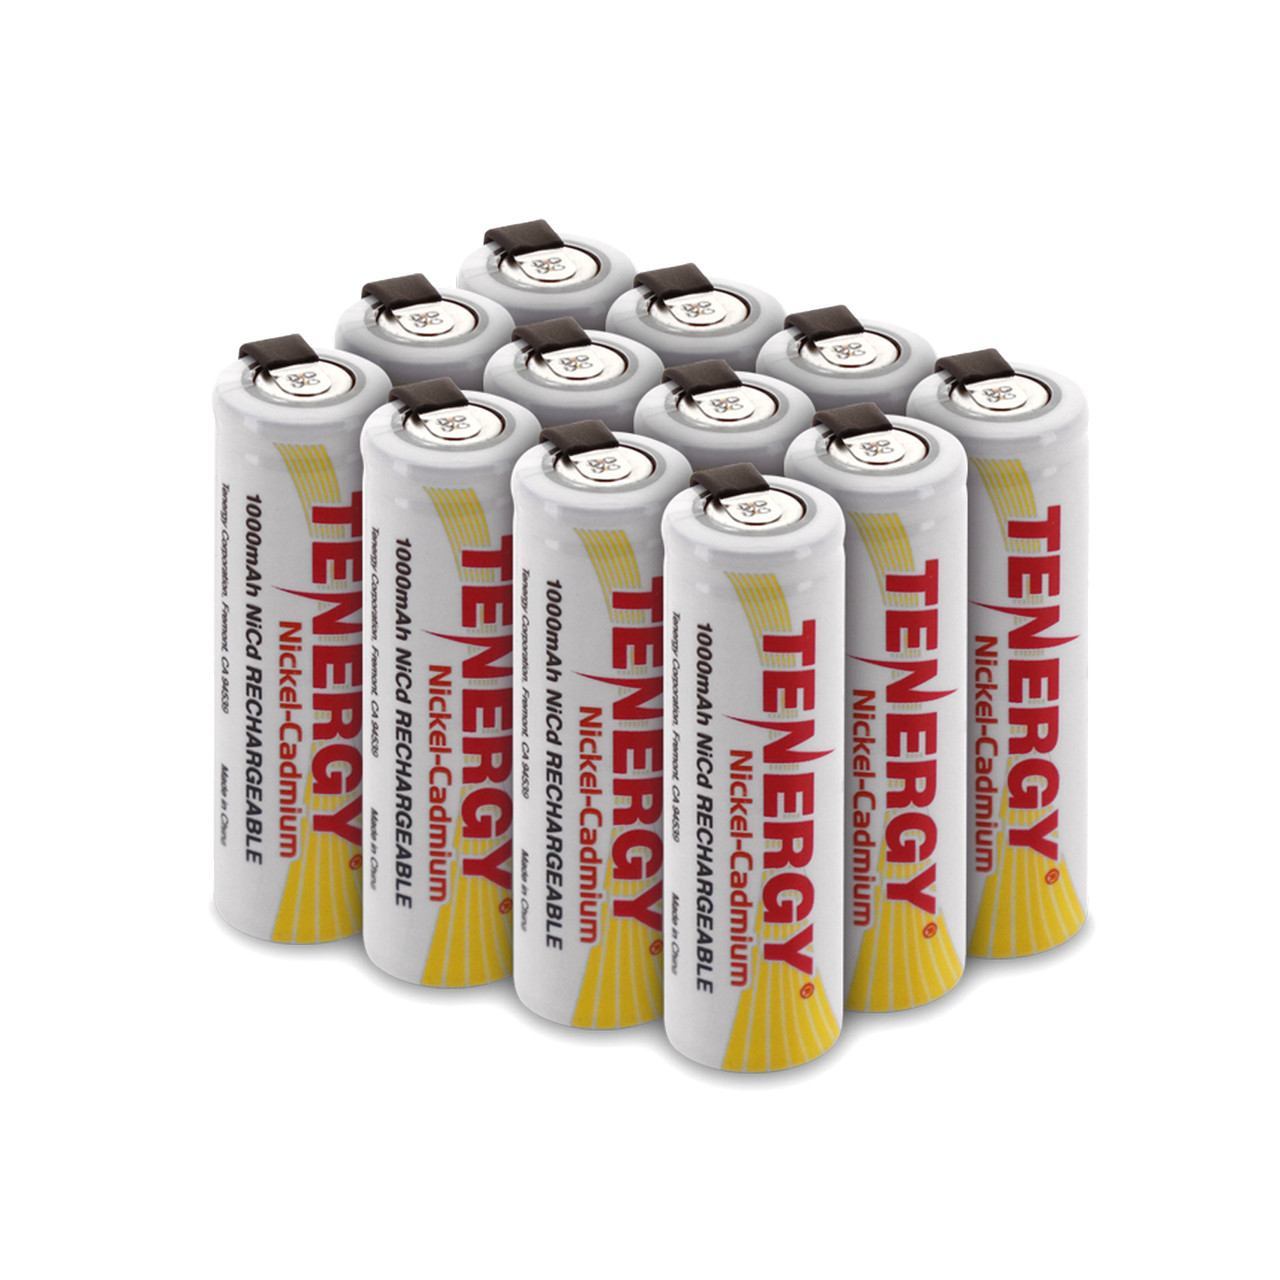 Aaa Rechargeable Batteries With Solder Tabs